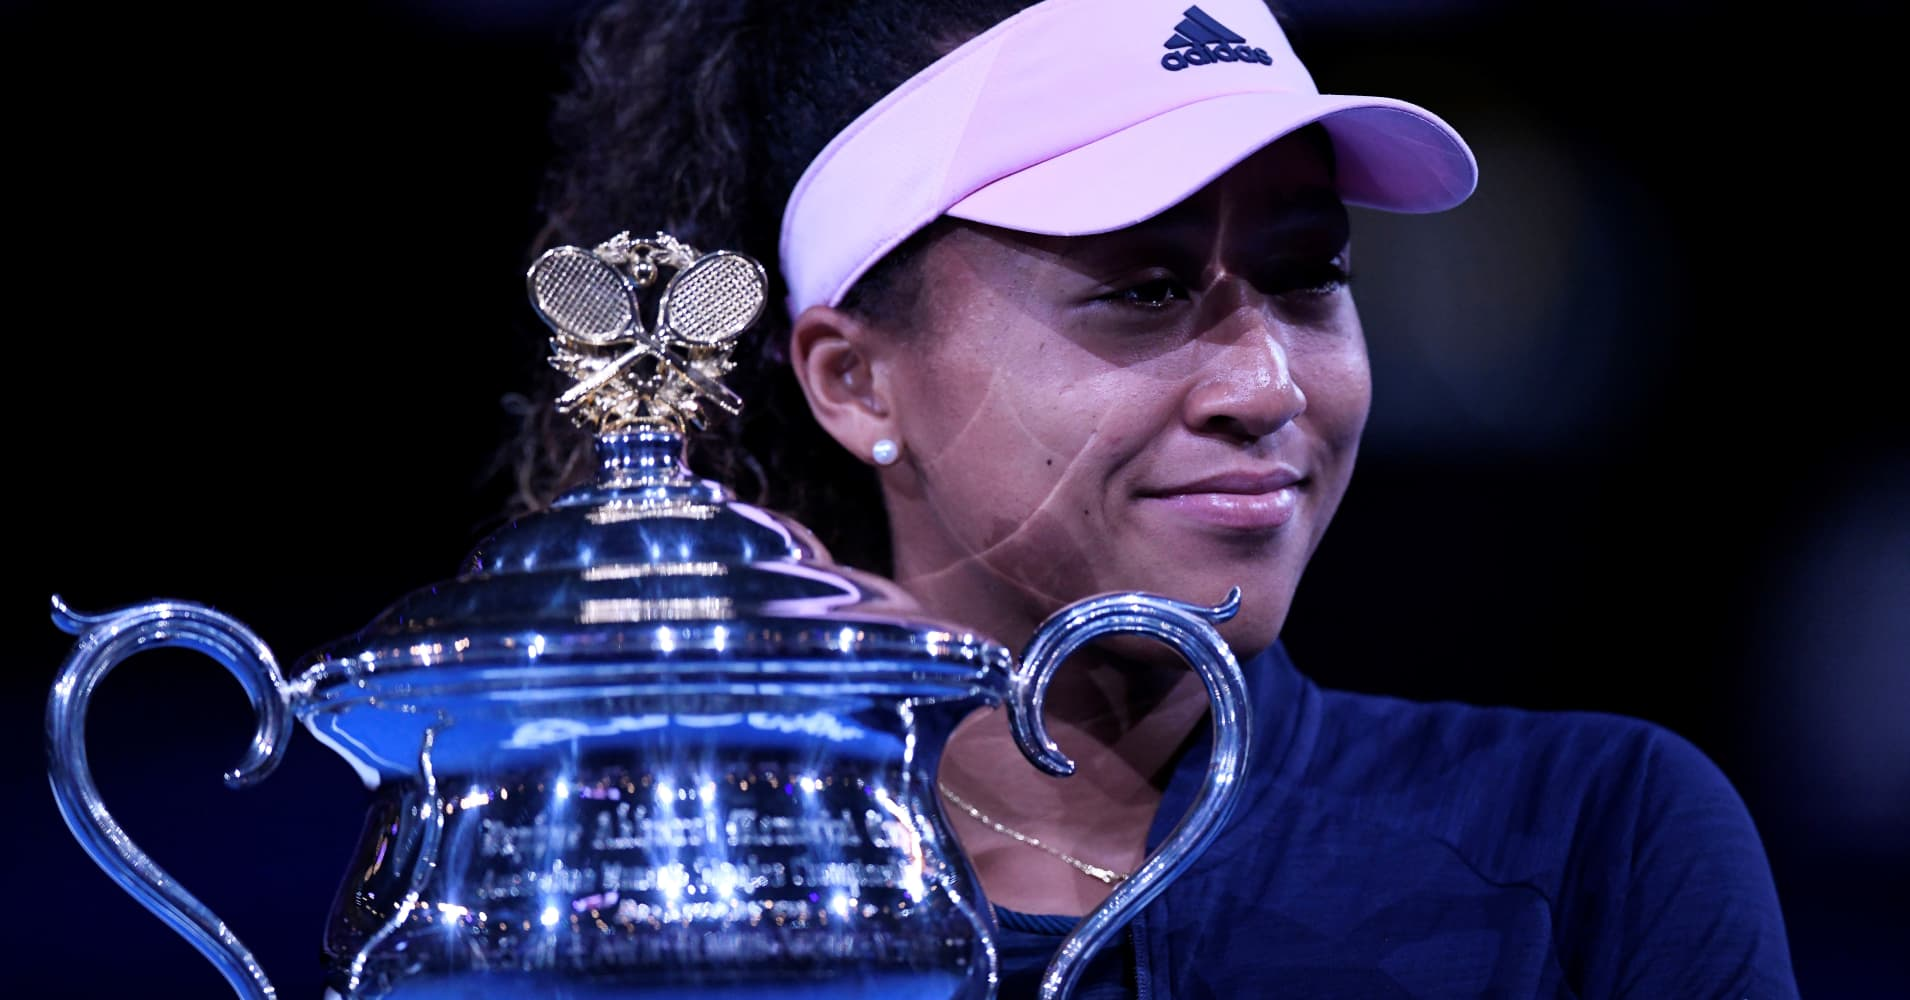 Naomi Osaka of Japan poses with the trophy after winning her Women's Singles Final match against Petra Kvitova